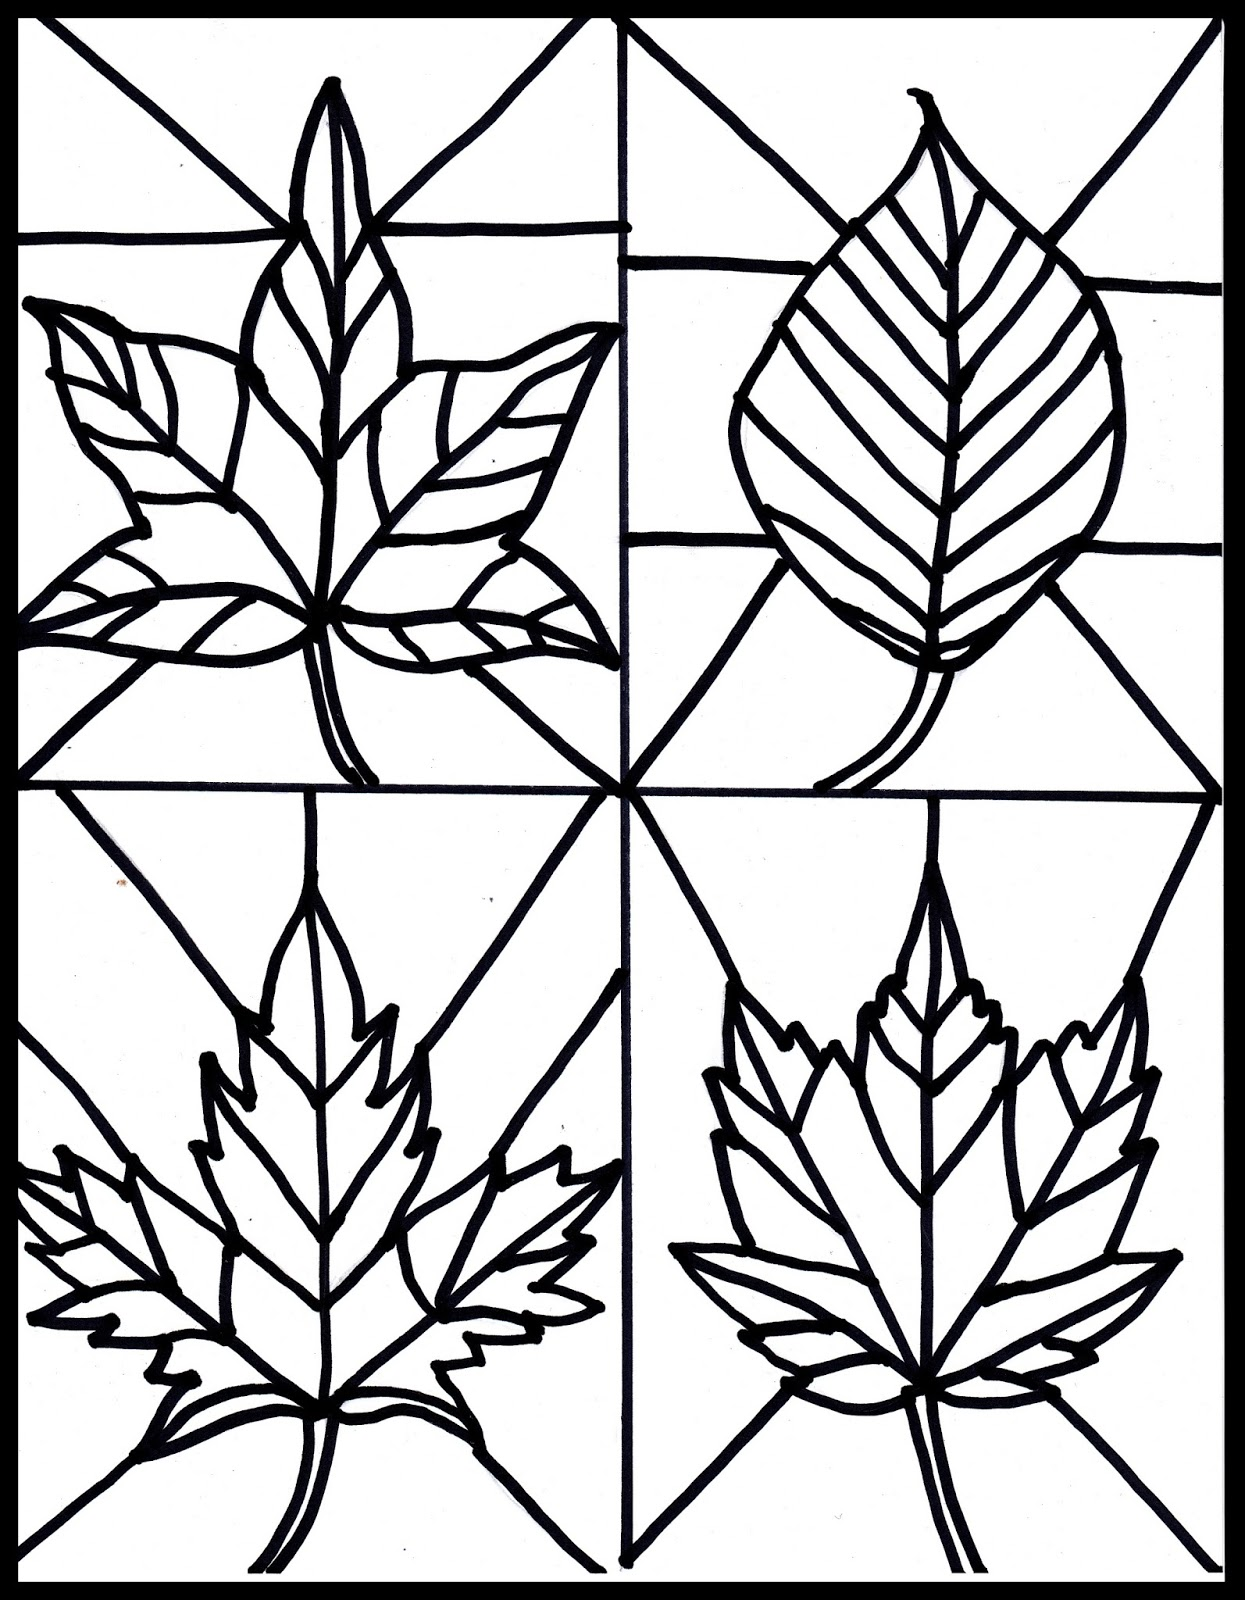 Make It Easy Crafts Kidu0027s Craft Stained Glass Leaves Free Printable  DownloadedFile Kids Craft Stained Glass Leaves Freehtml Loose Leaf Paper  Template  Printable Loose Leaf